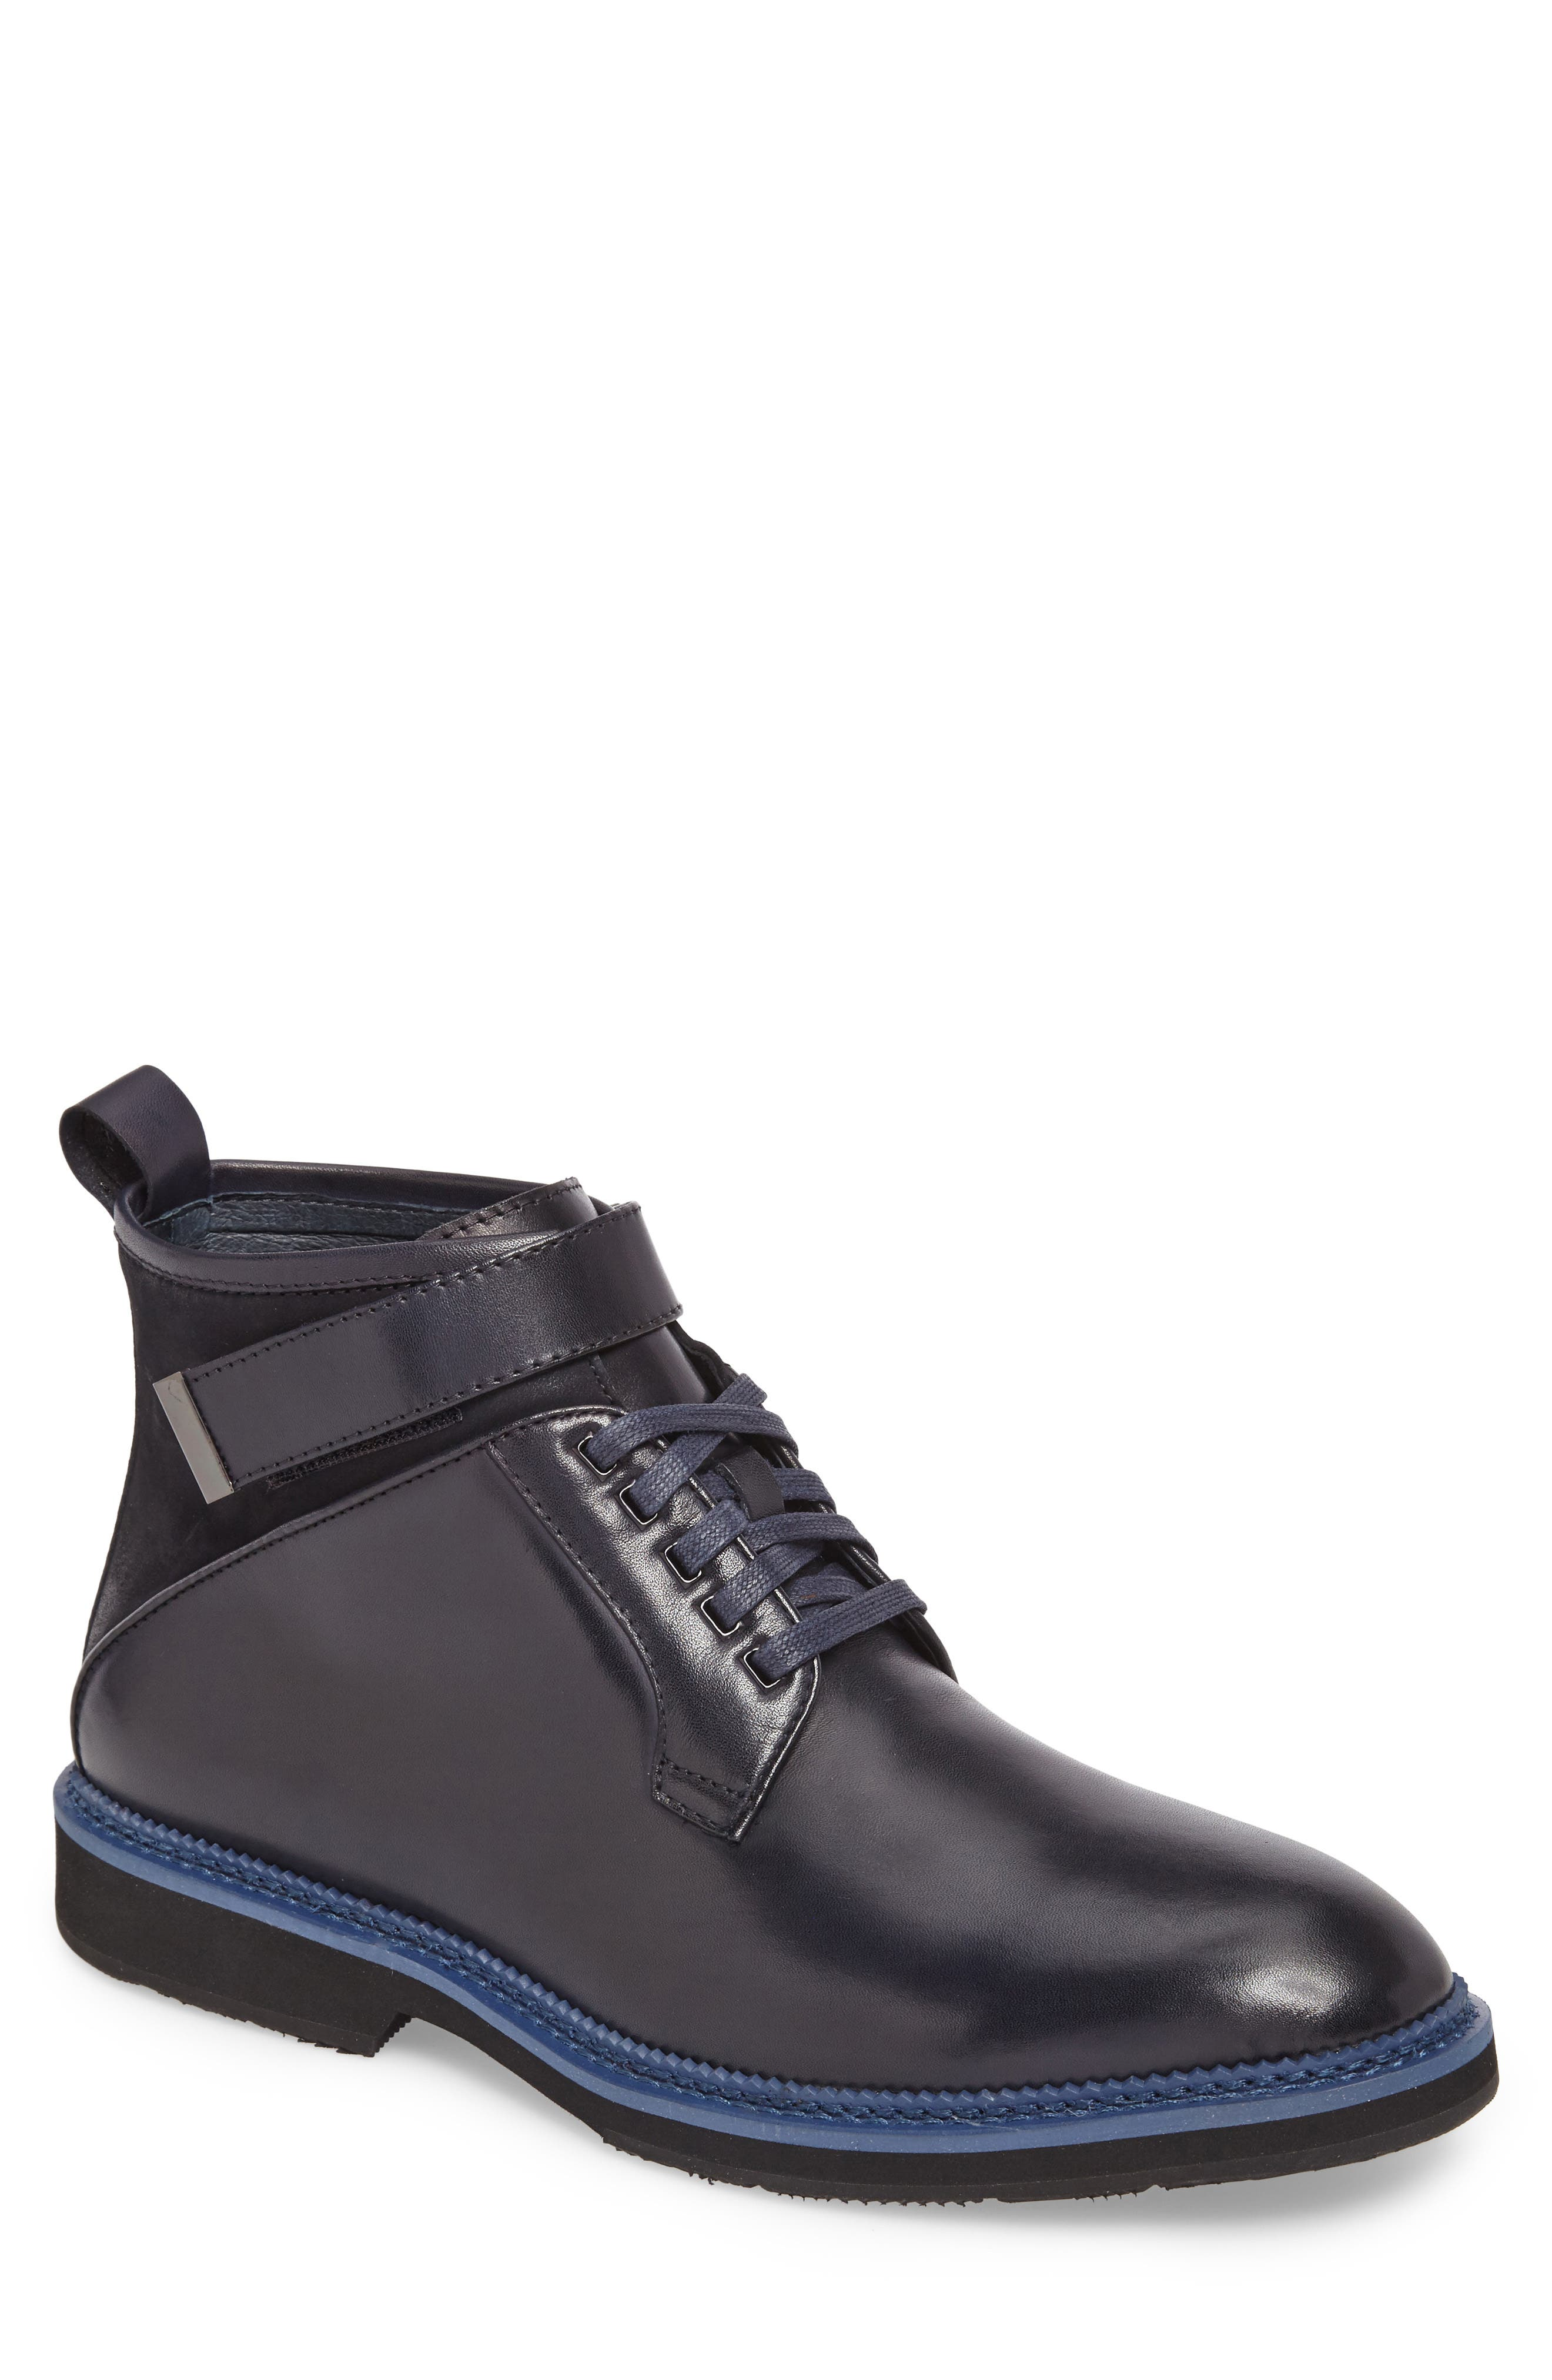 Ginko Plain Toe Boot,                             Main thumbnail 1, color,                             Navy Leather